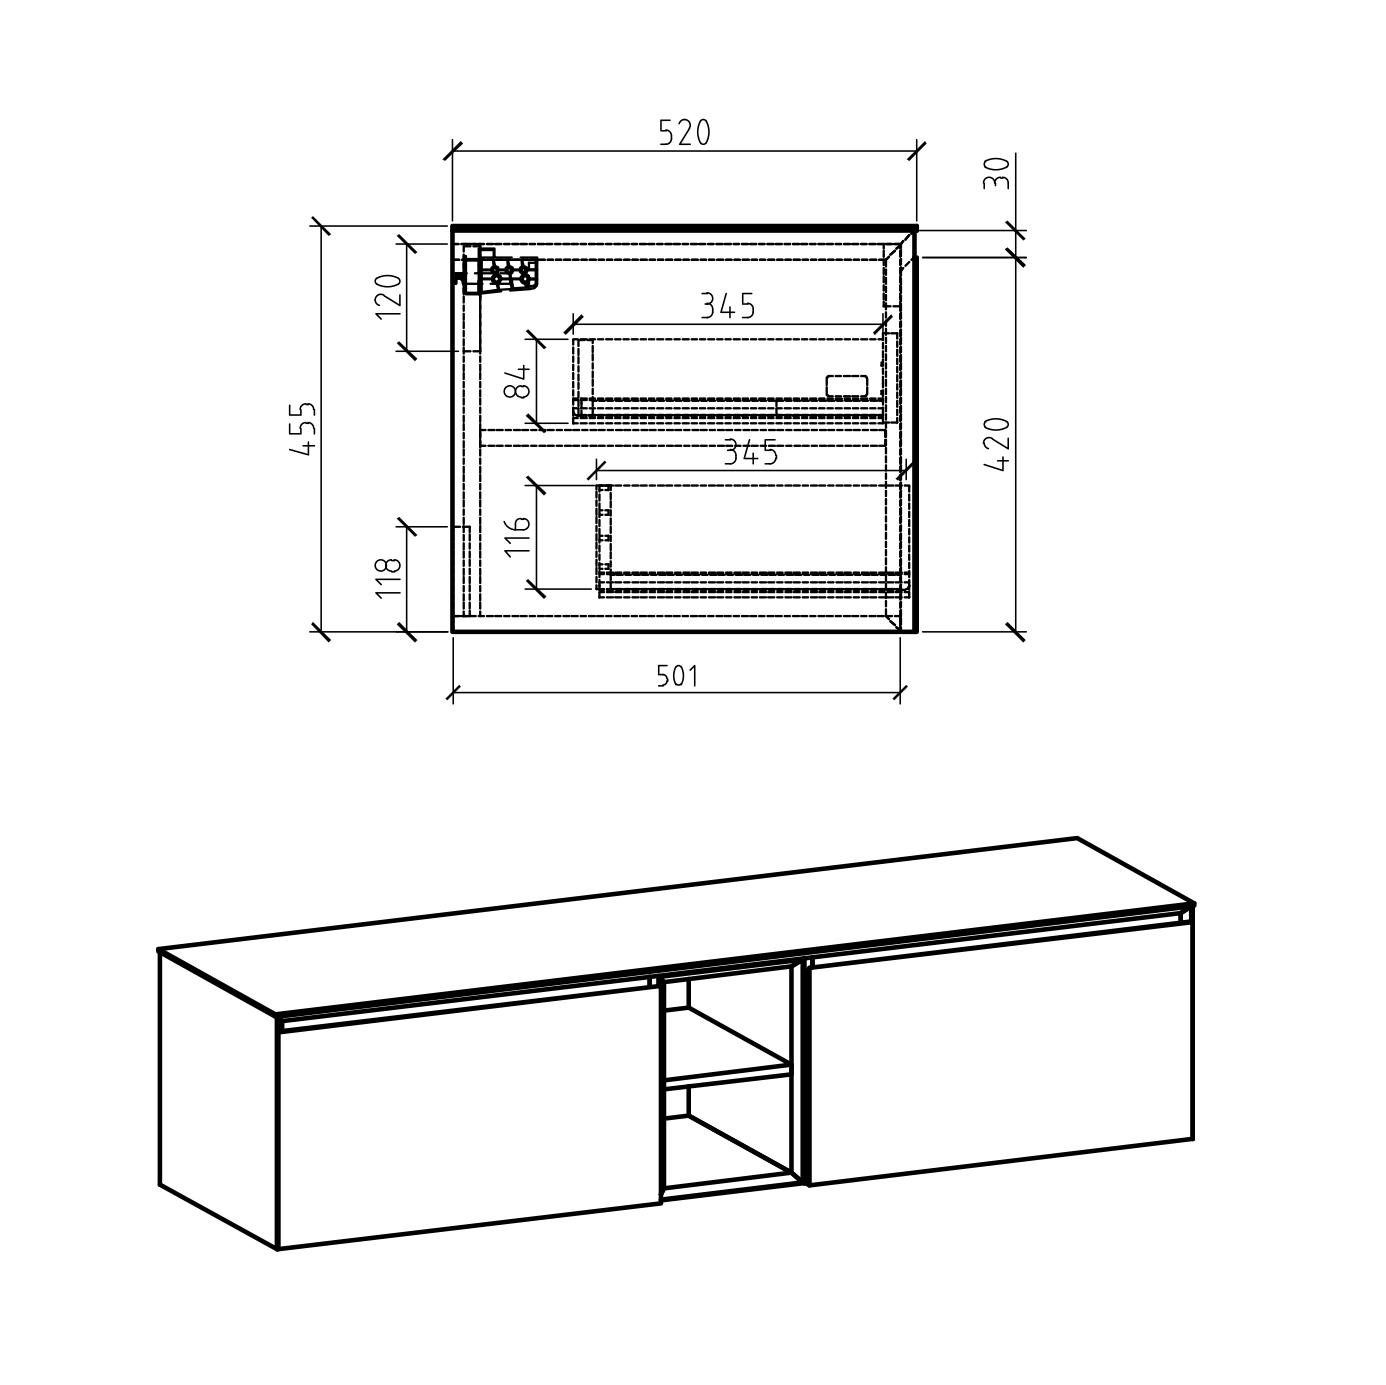 Inalco 1900 Cabinet - Drawing 2